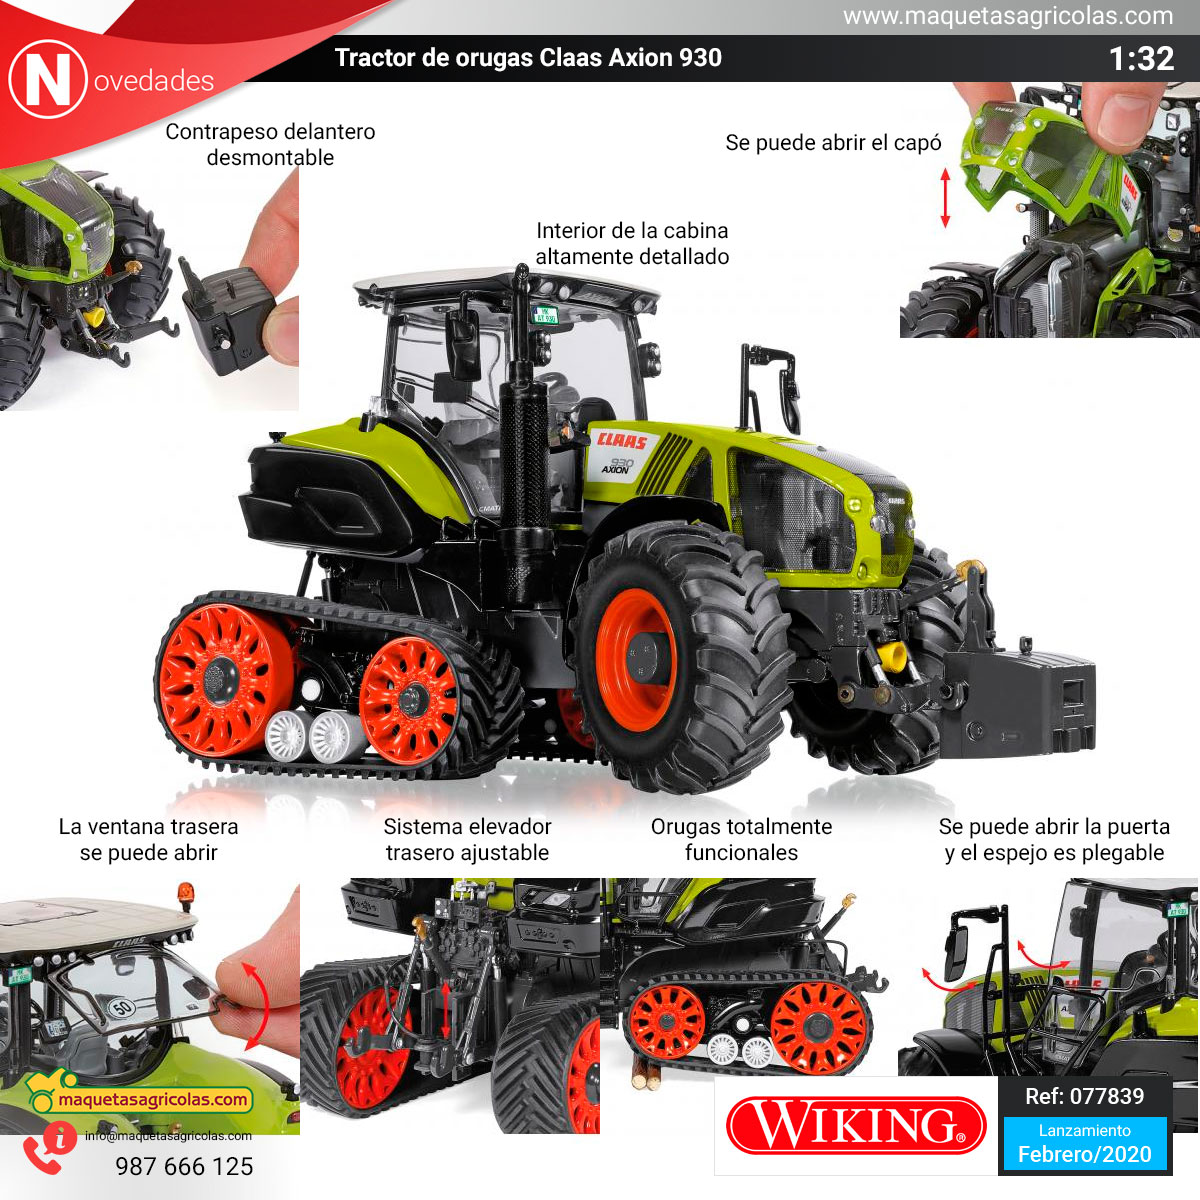 Tractor Claas Axion 930 de Wiking Ref: 077839